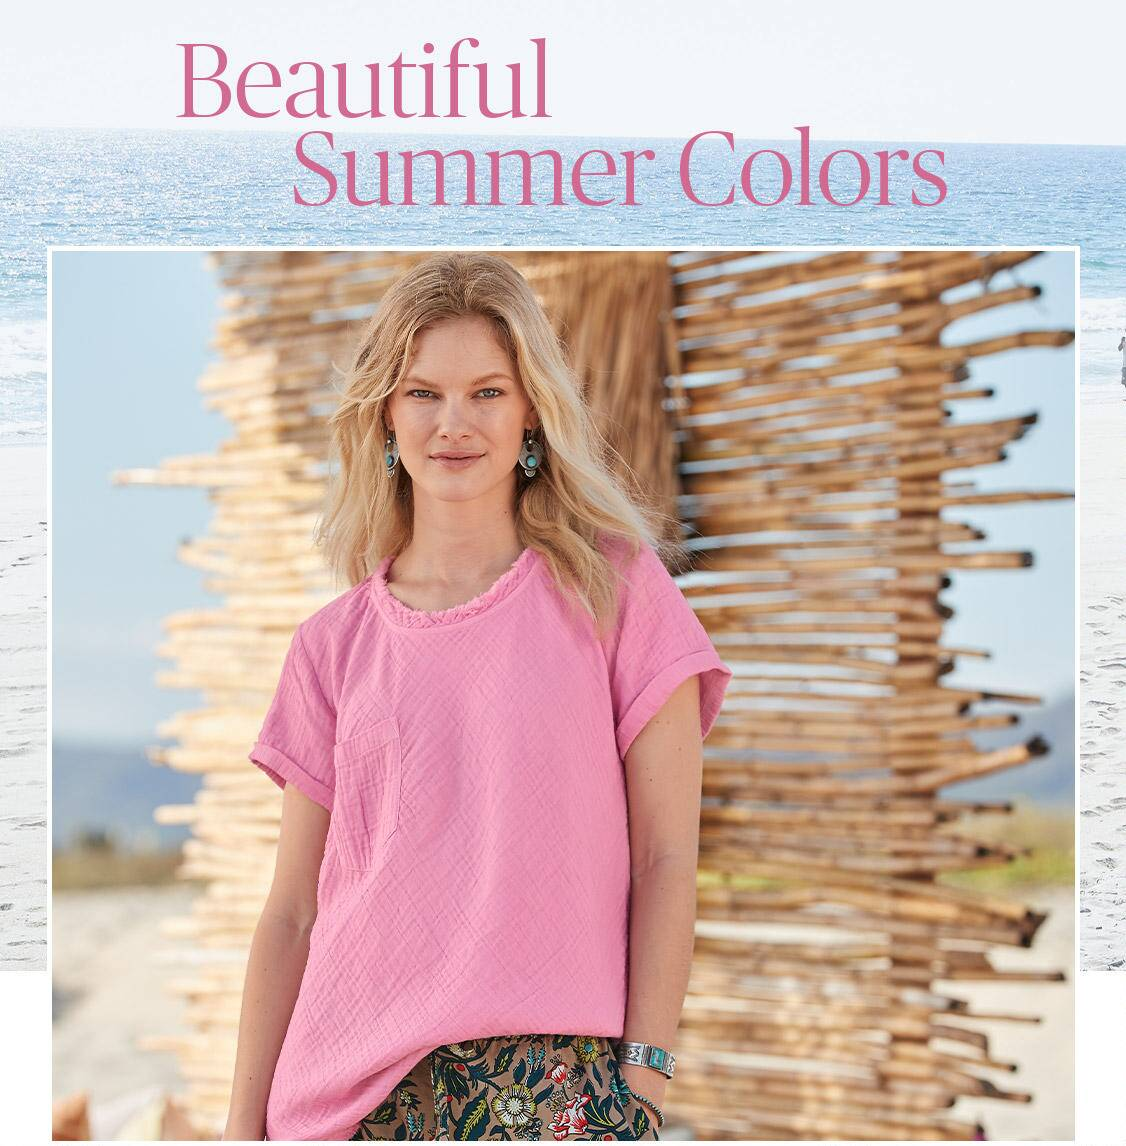 Beautiful Summer Colors